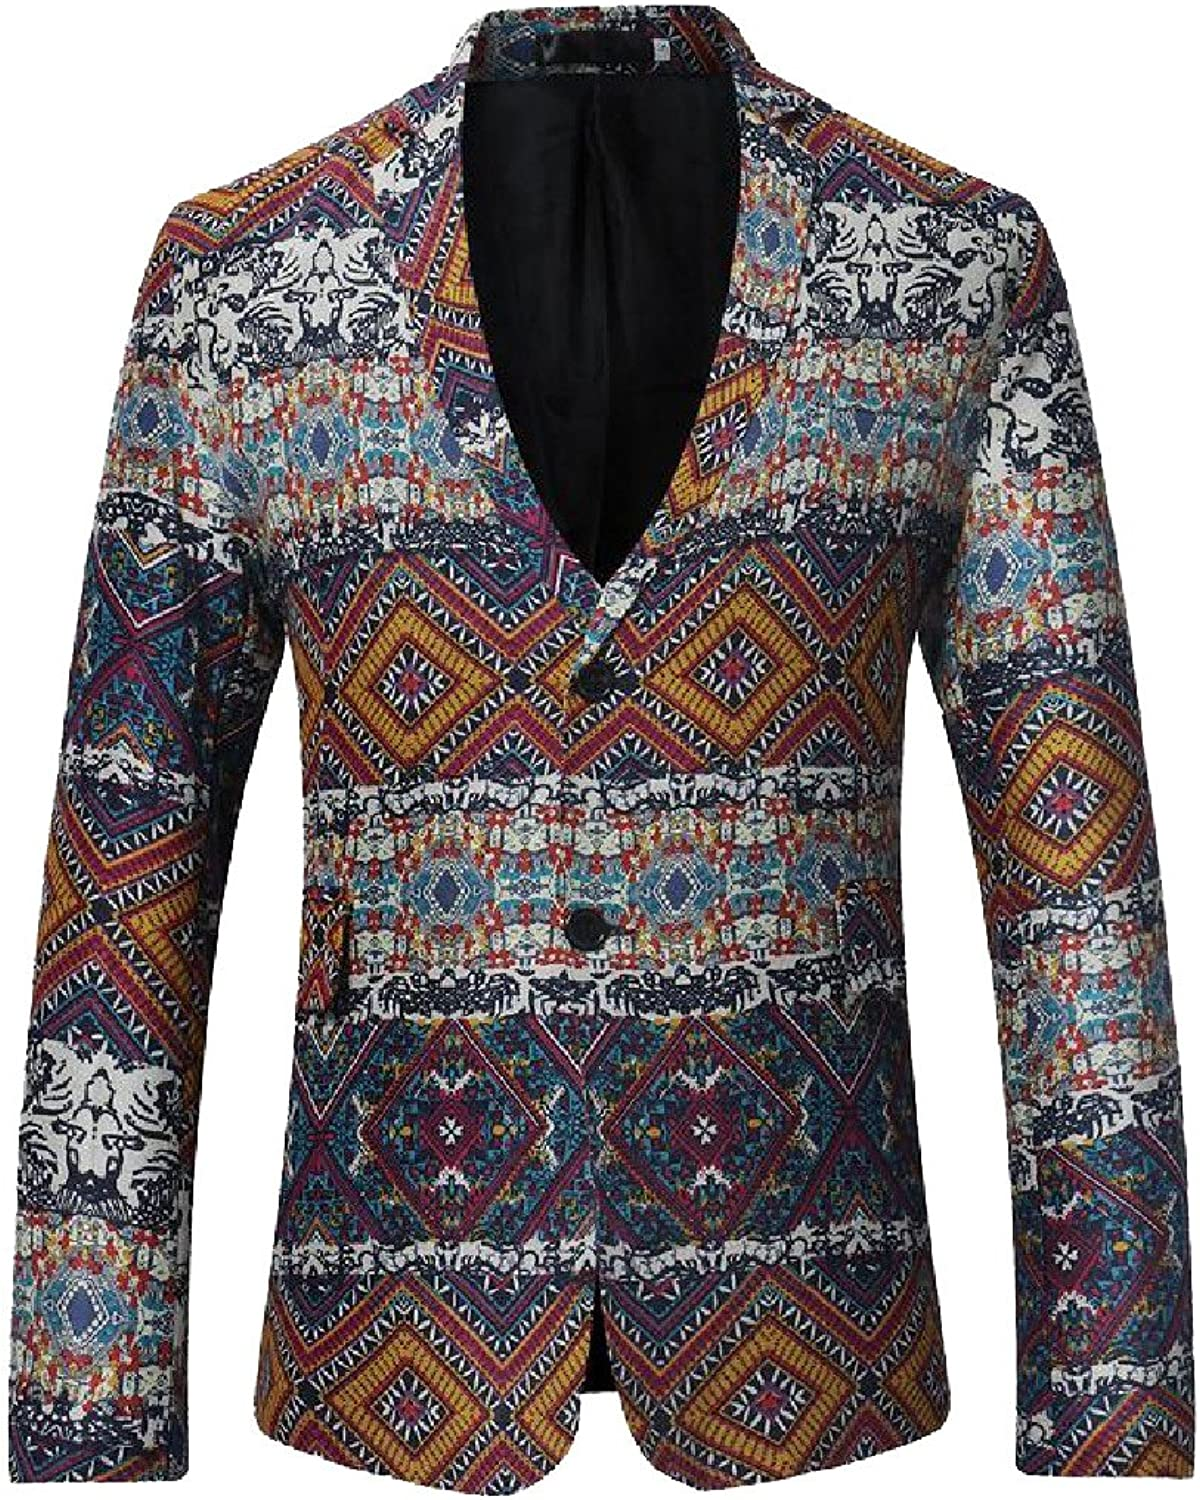 RingBong Mens Lapel Button Floral Retro Style Casual Long-Sleeve T-Shirts Shirt Clothing